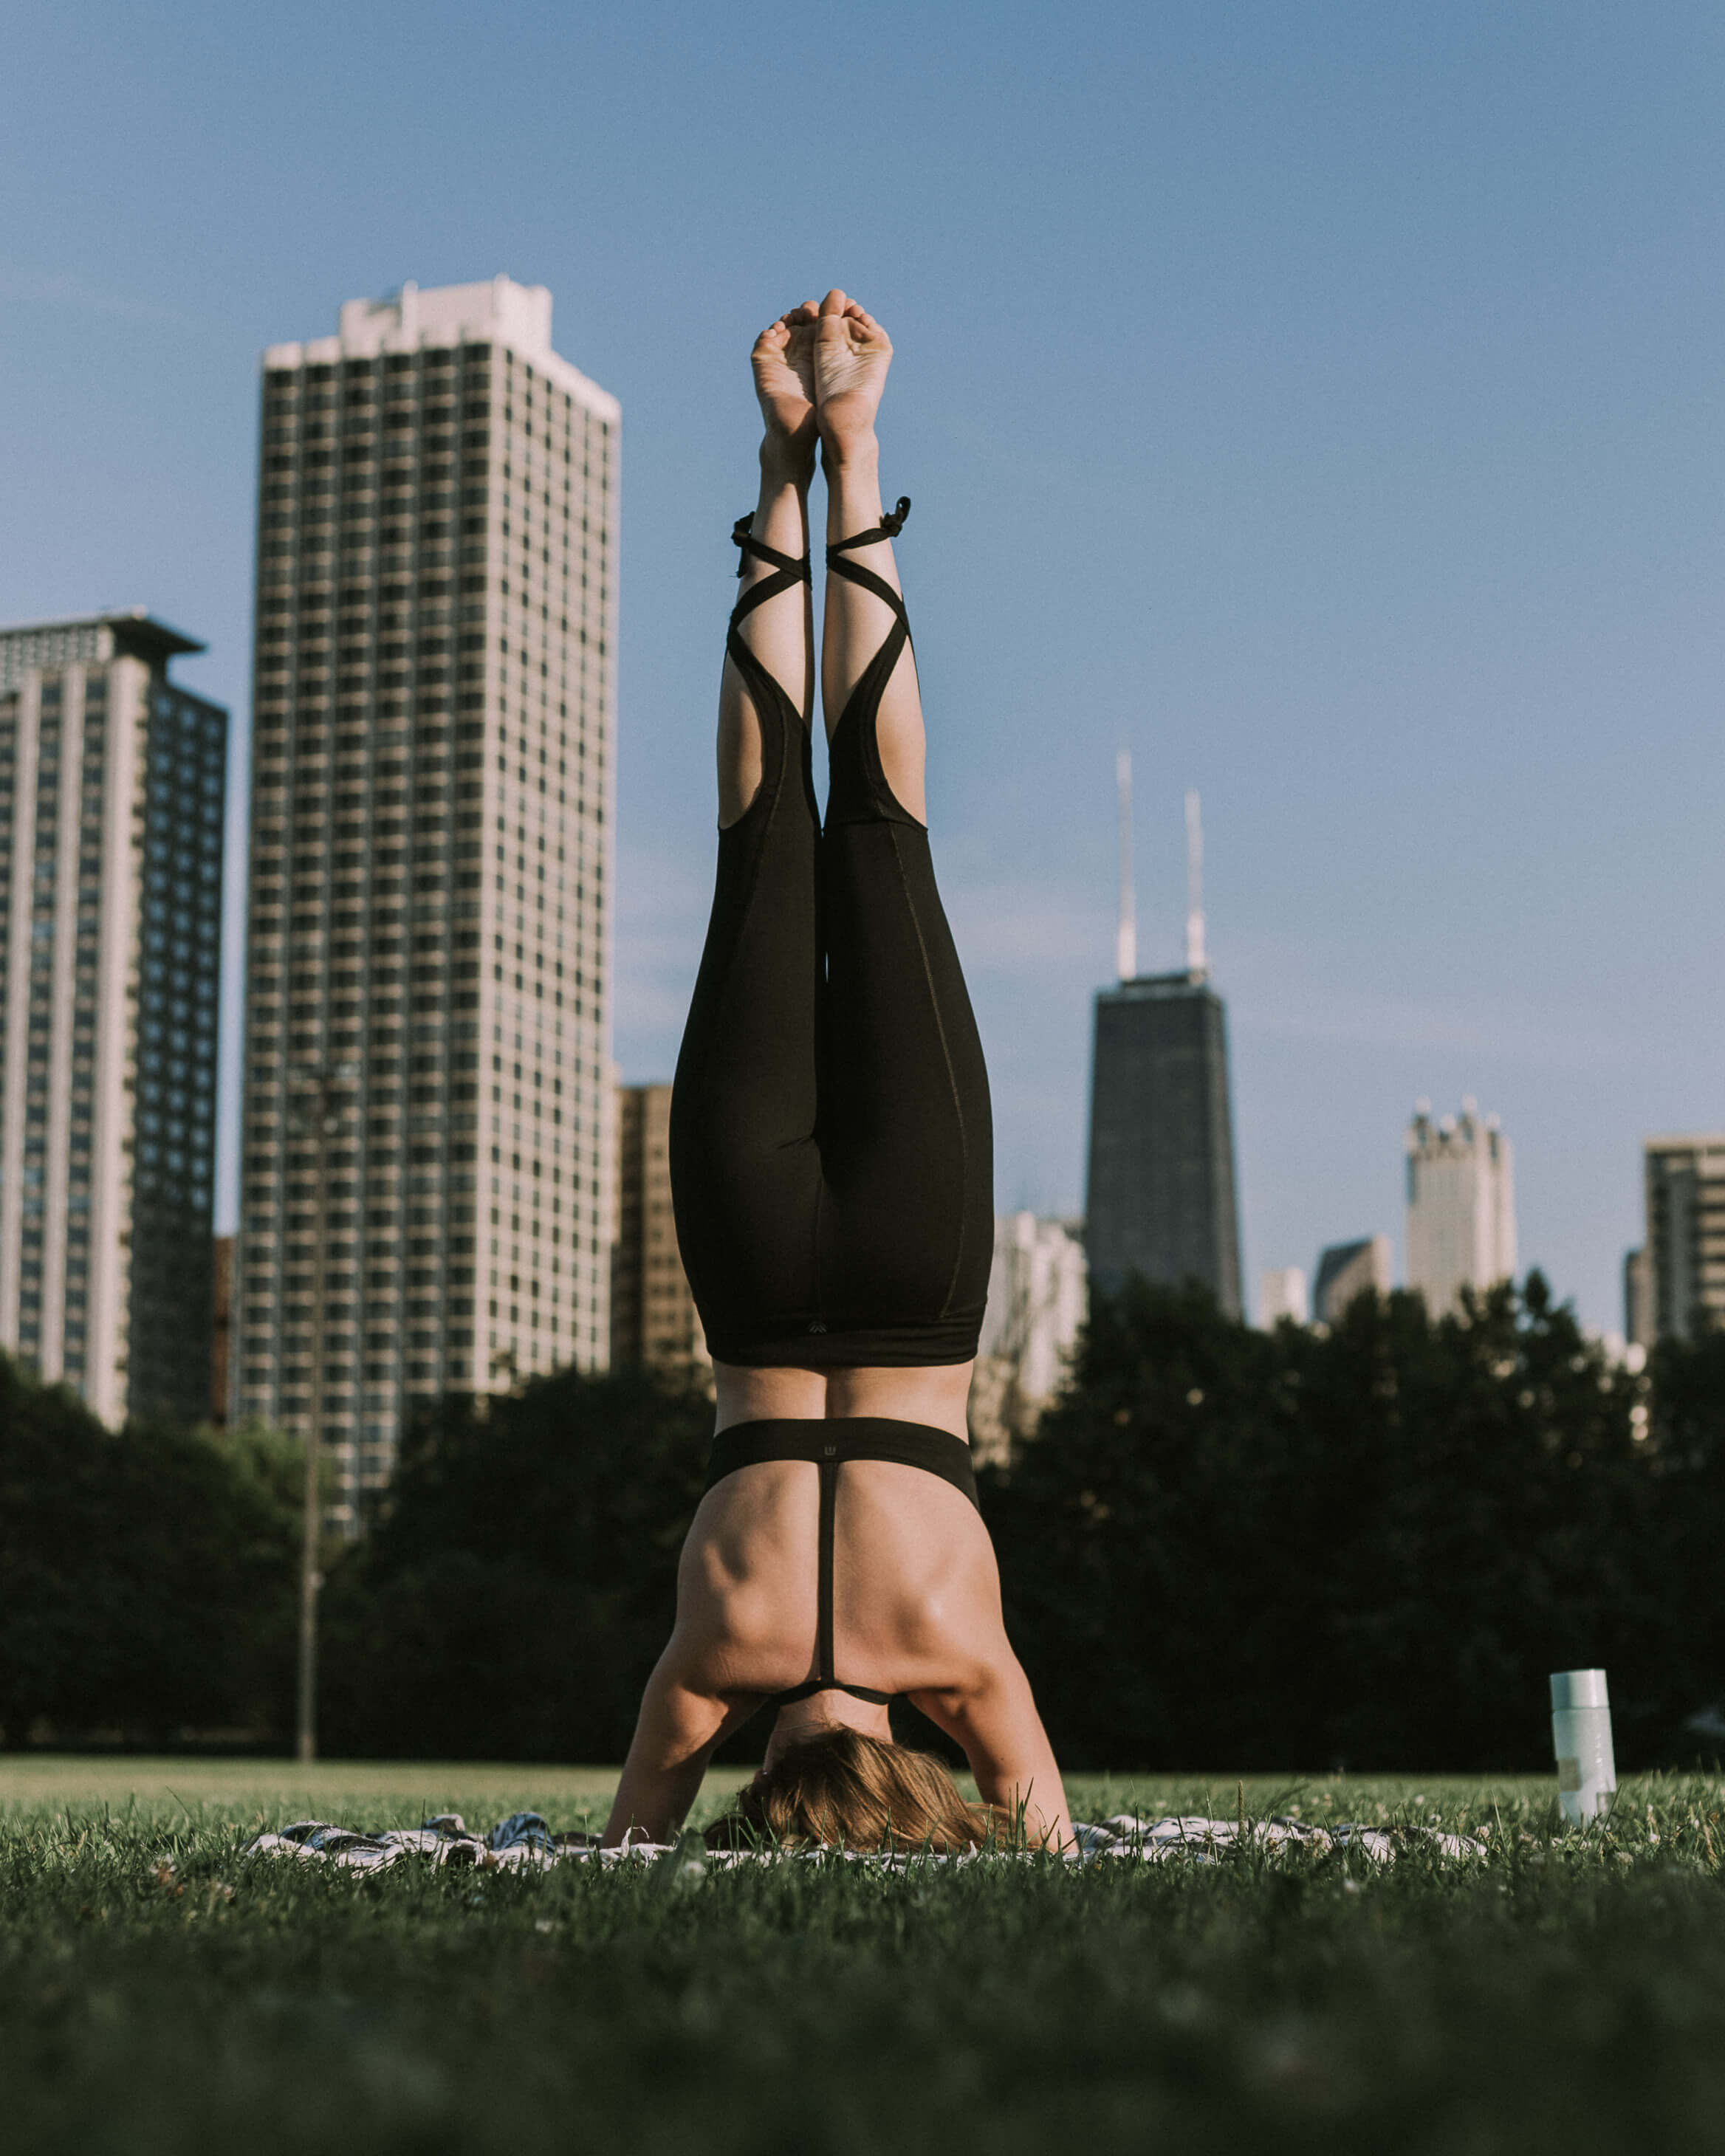 female yoga athlete posing in chicago park